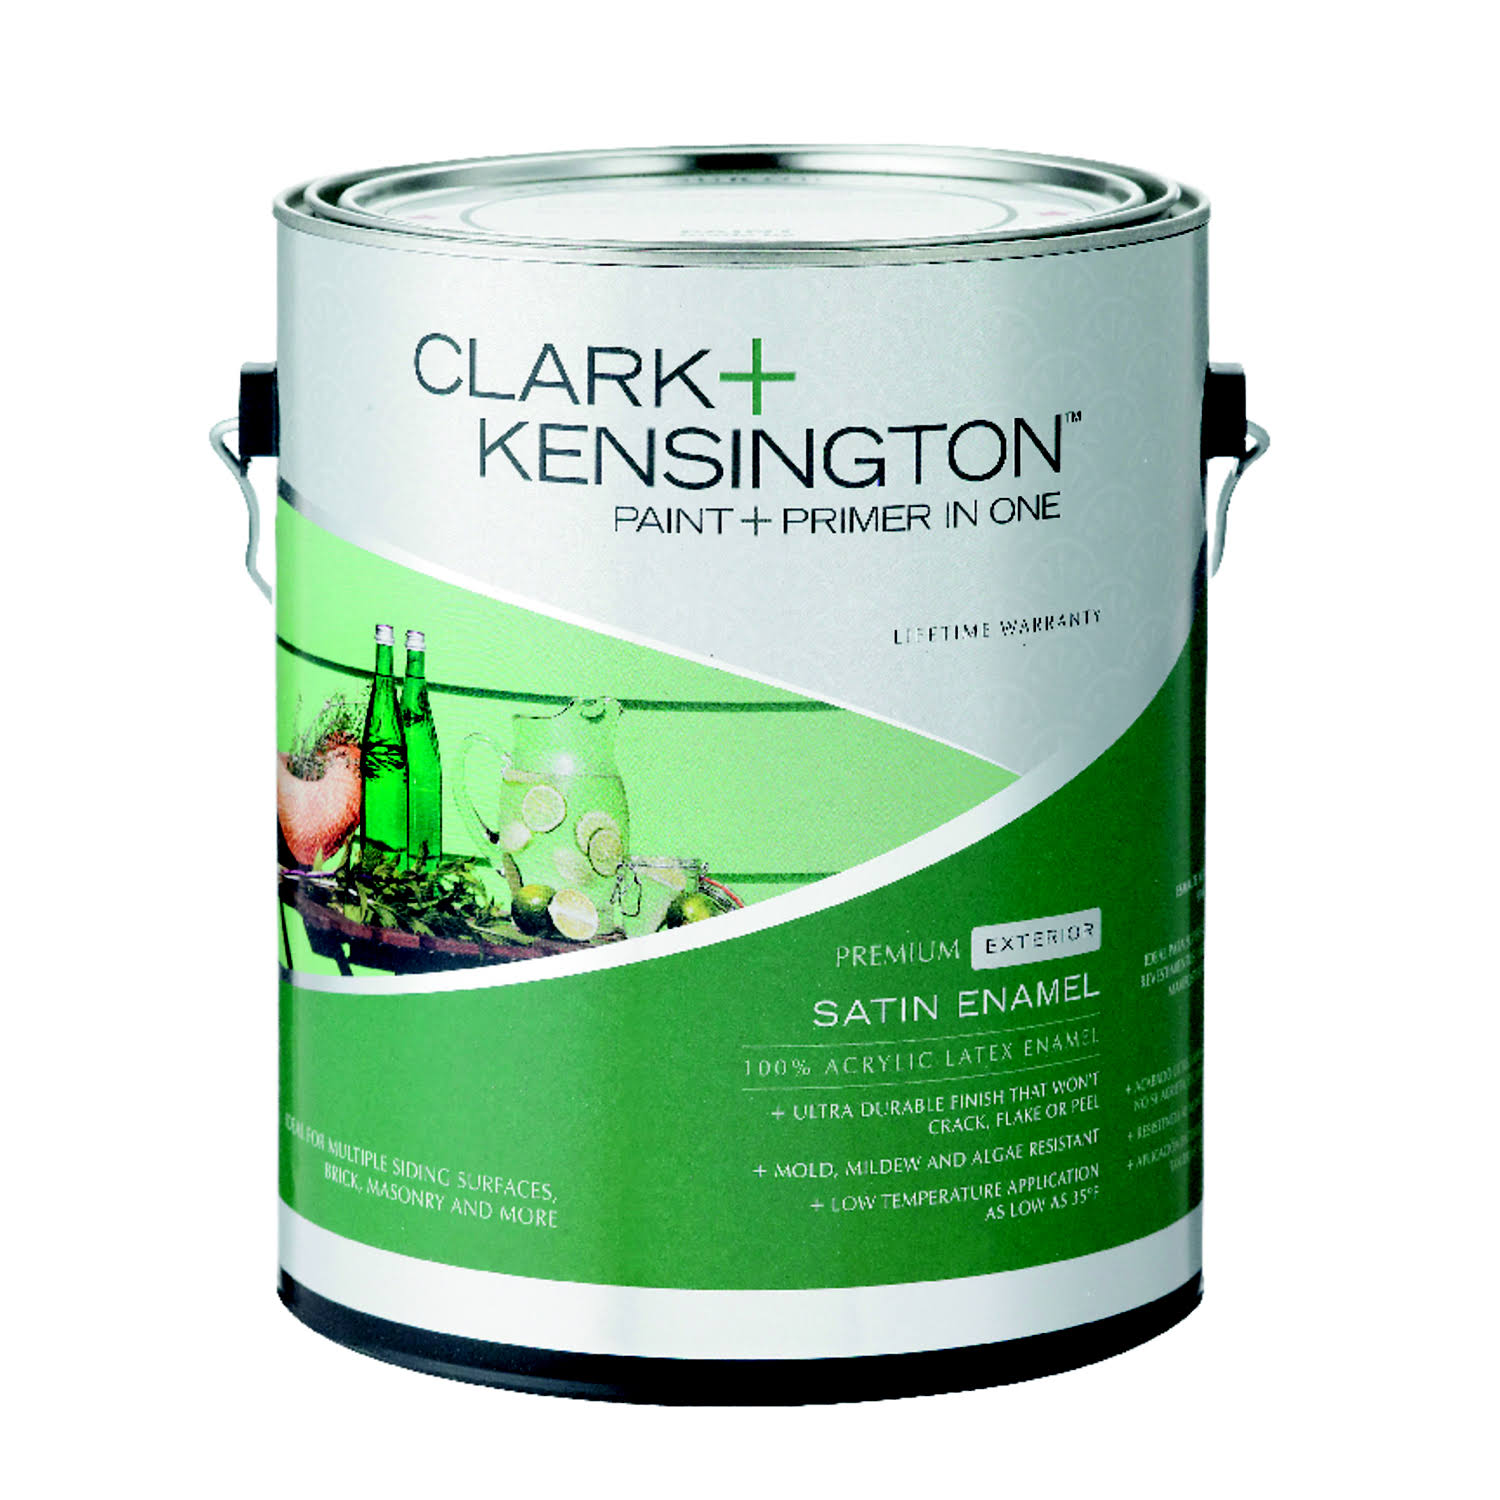 Clark+Kensington Satin Tintable Base Neutral Base Acrylic Latex House/Trim Paint 1 gal.